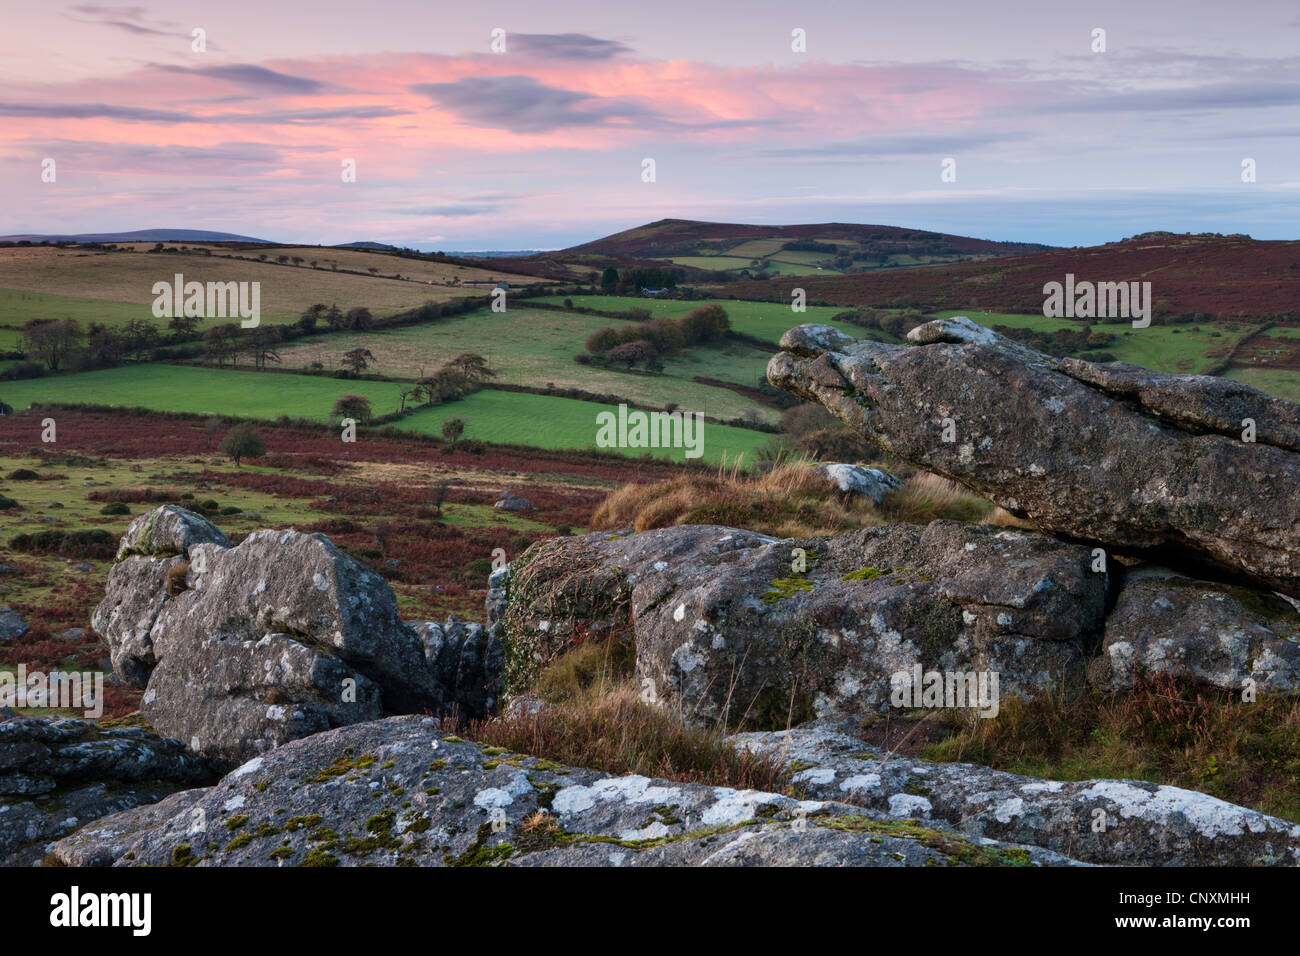 Twilight over Dartmoor countryside viewed from Hound Tor, Dartmoor, Devon, England. Autumn (October) 2011. - Stock Image